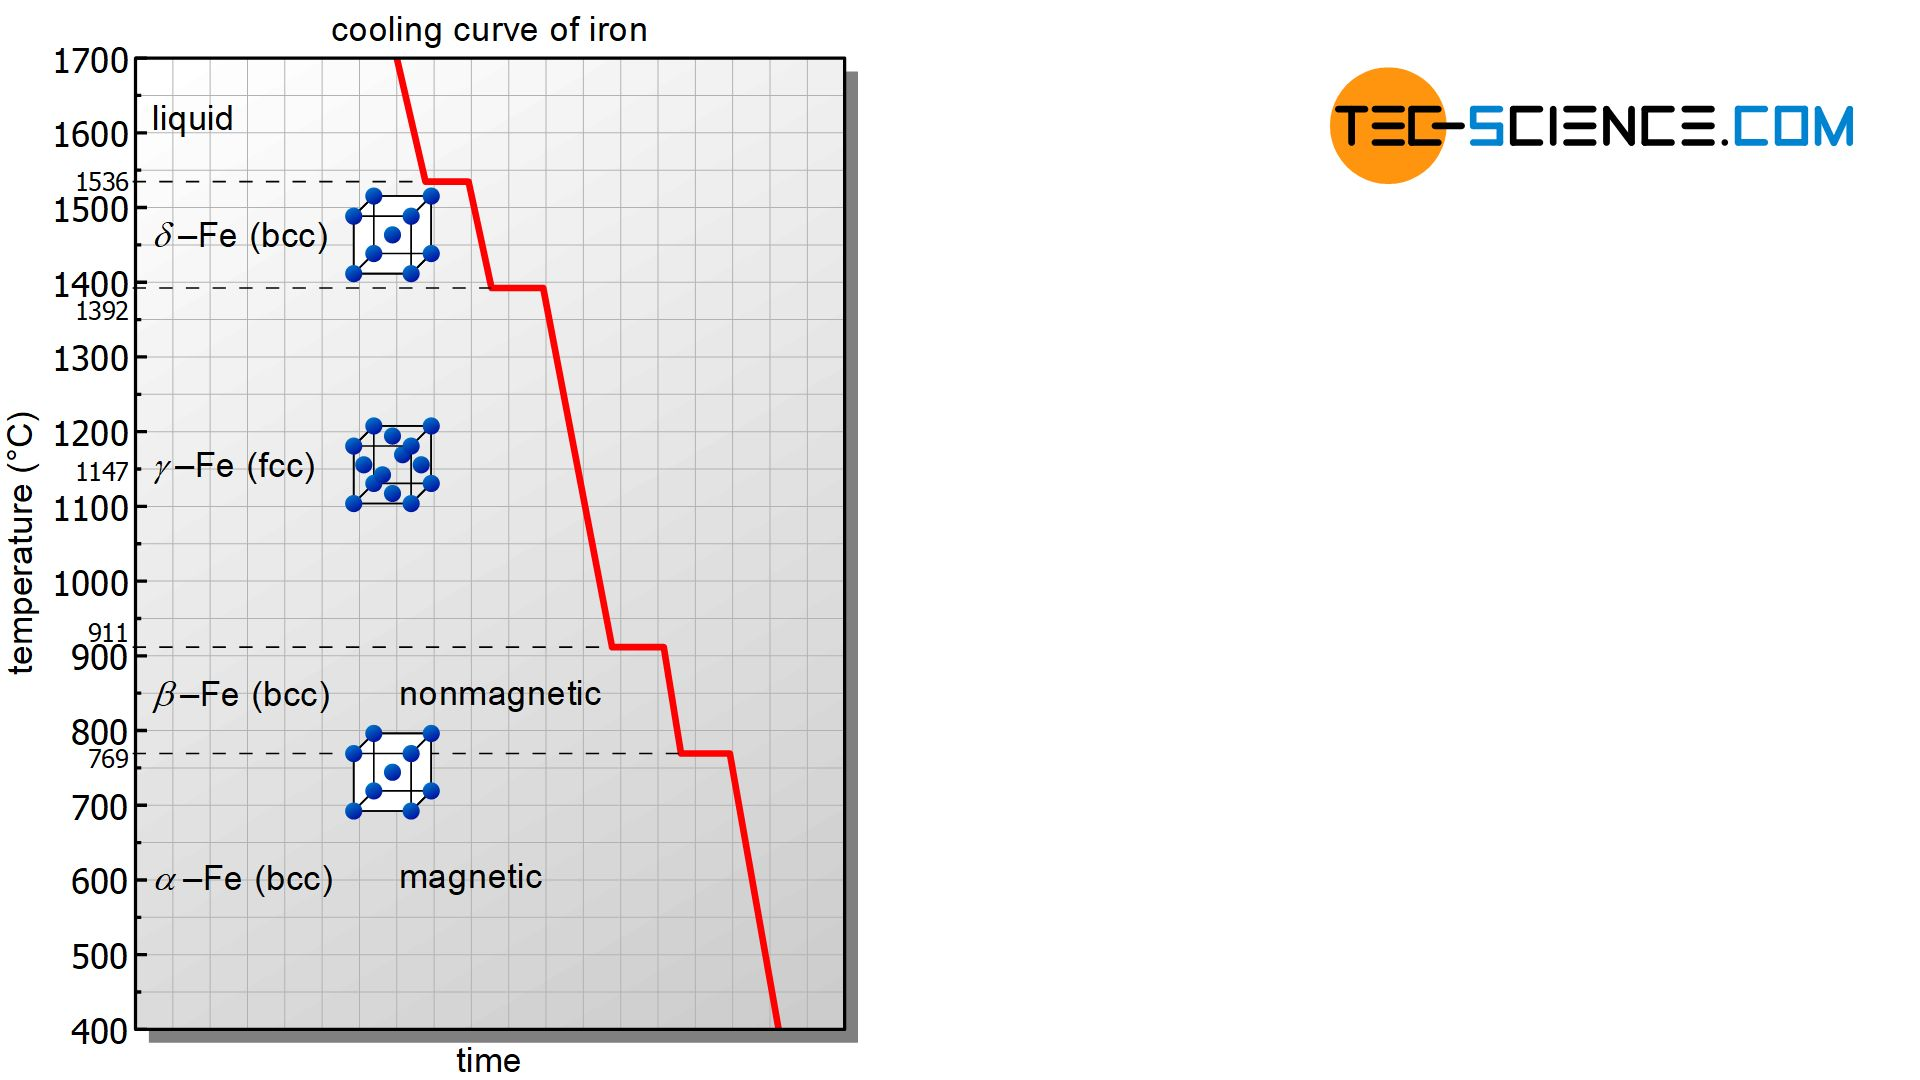 Cooling curve of soft iron